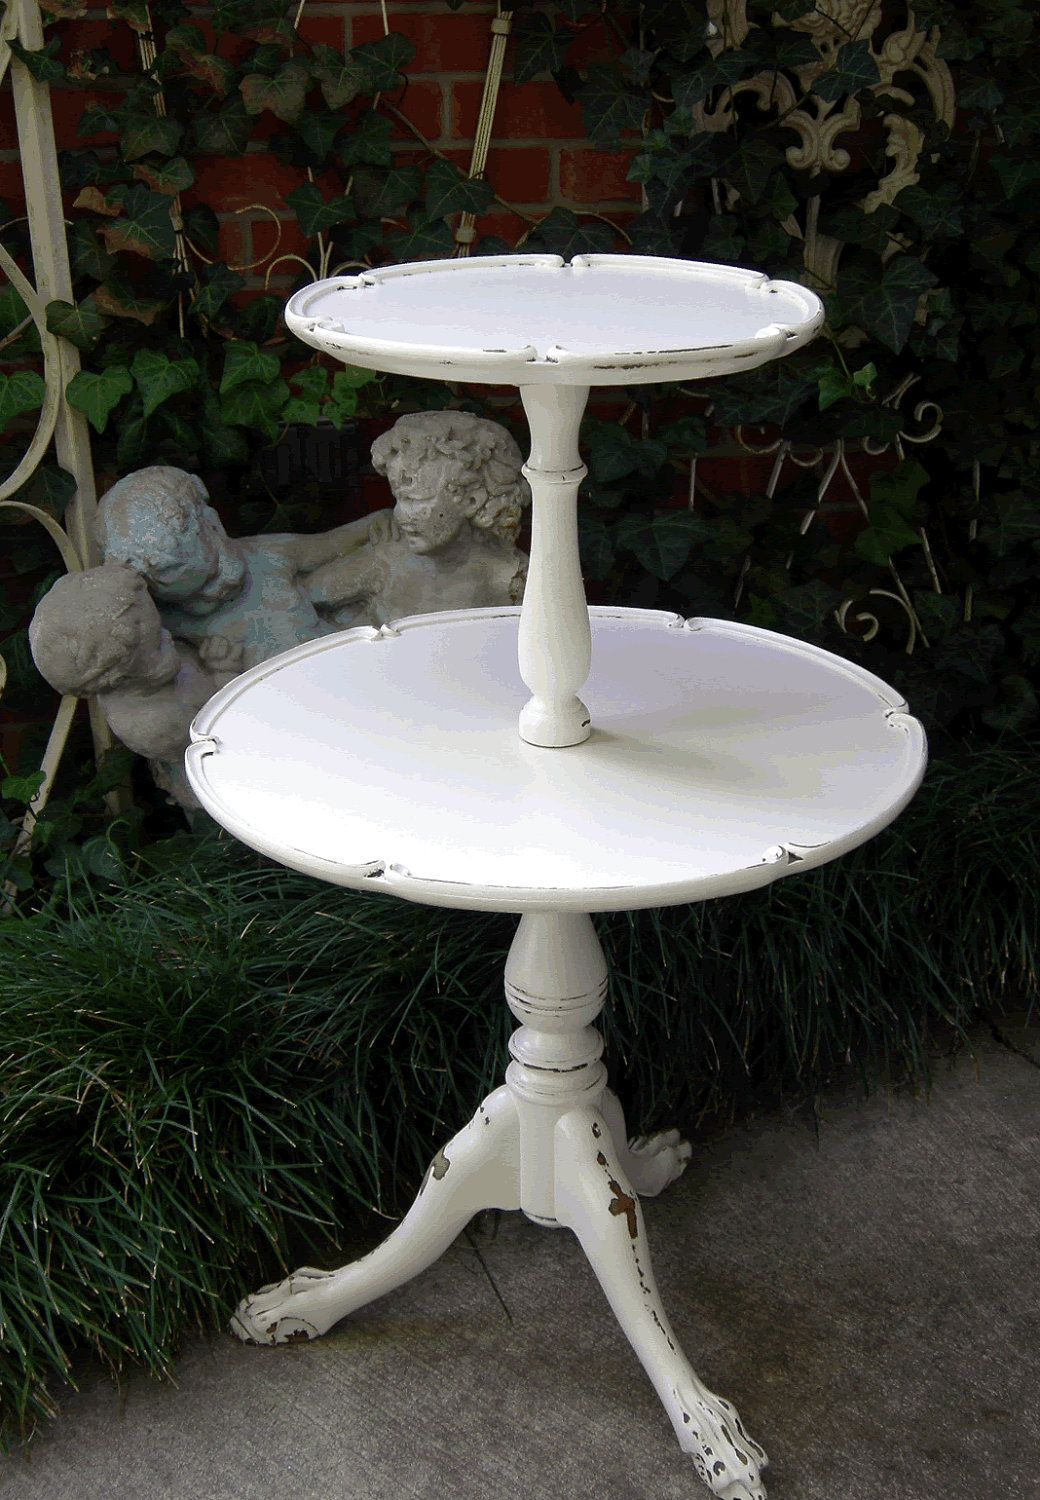 Ordinaire Shabby Chic French White Antique Side Table 2 Tier Pie Crust Round Tops  Solid Wood Furniture